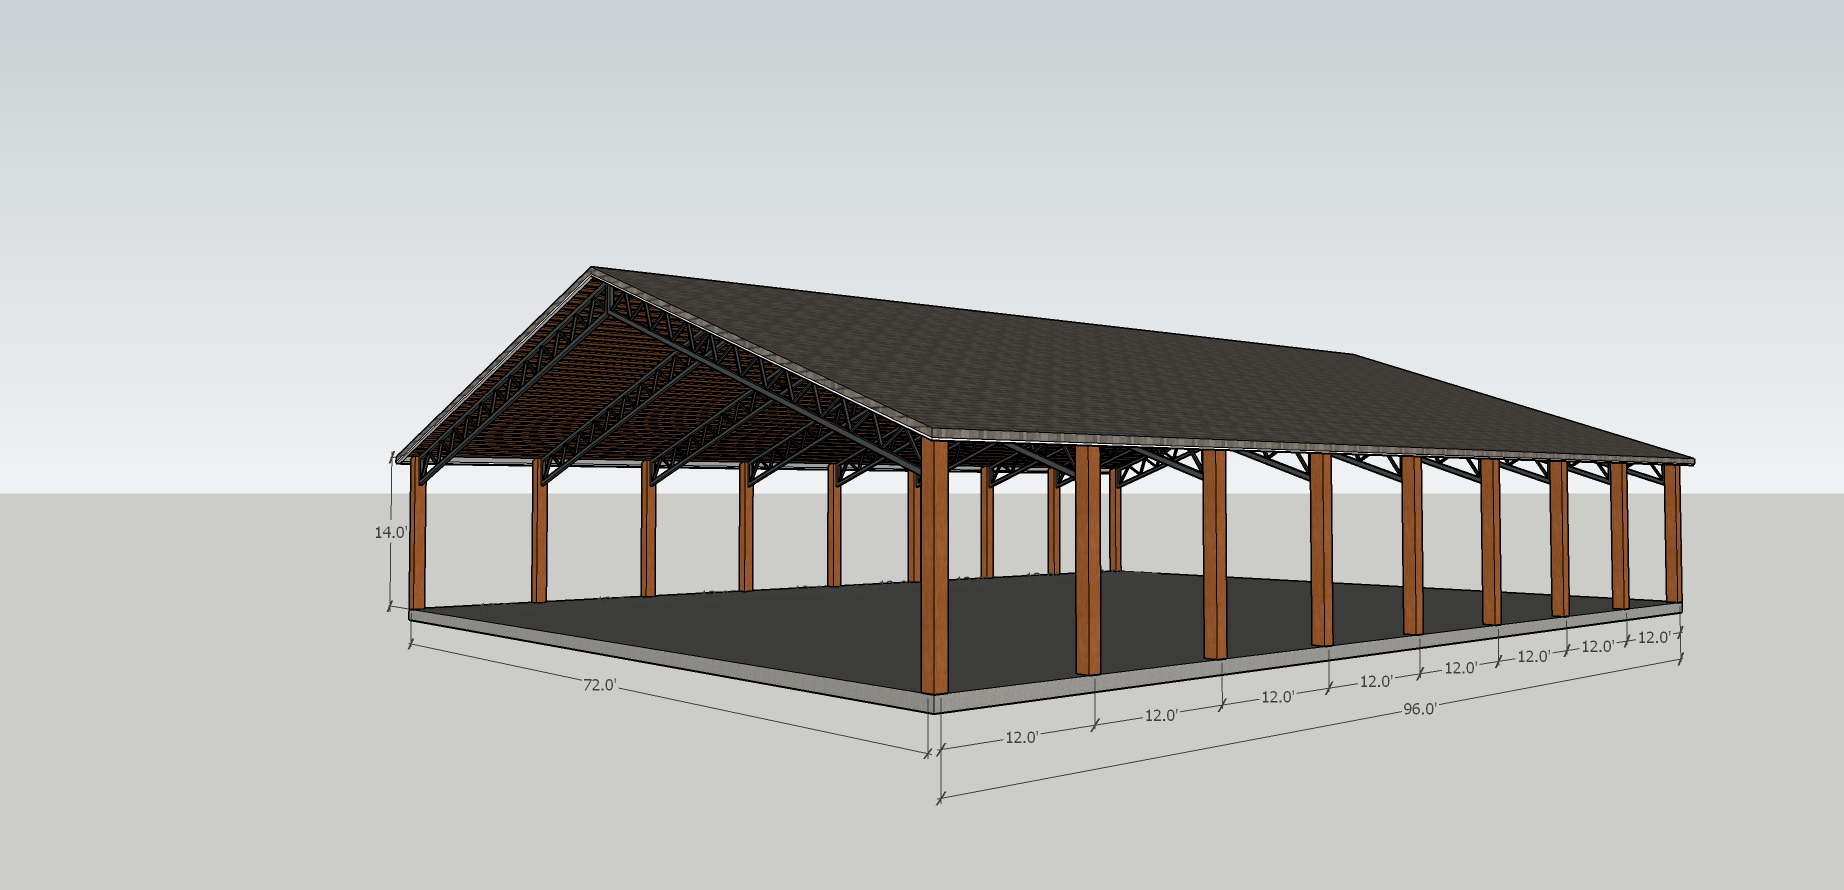 Support for the annual fund can help make the much needed pole barn a reality.